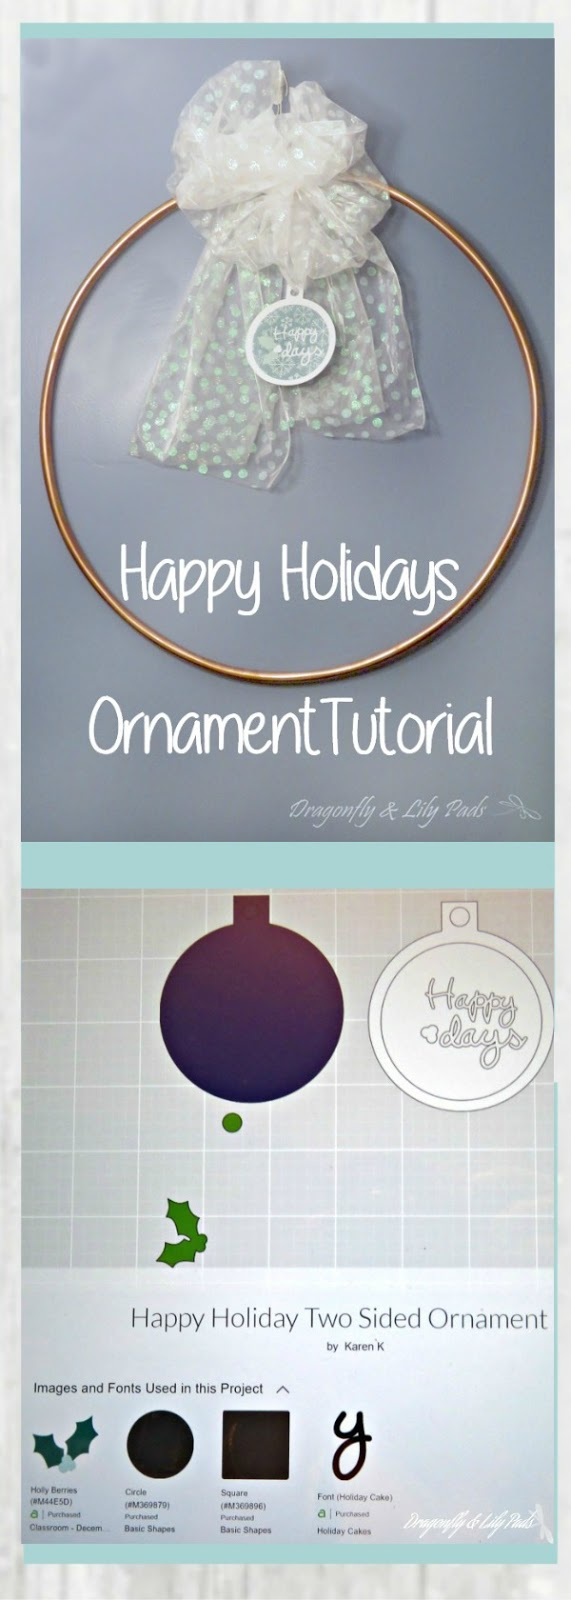 Pinterest image of Happy Holidays Ornament Tutorial Dragonfly and Lily Pads Blog Post